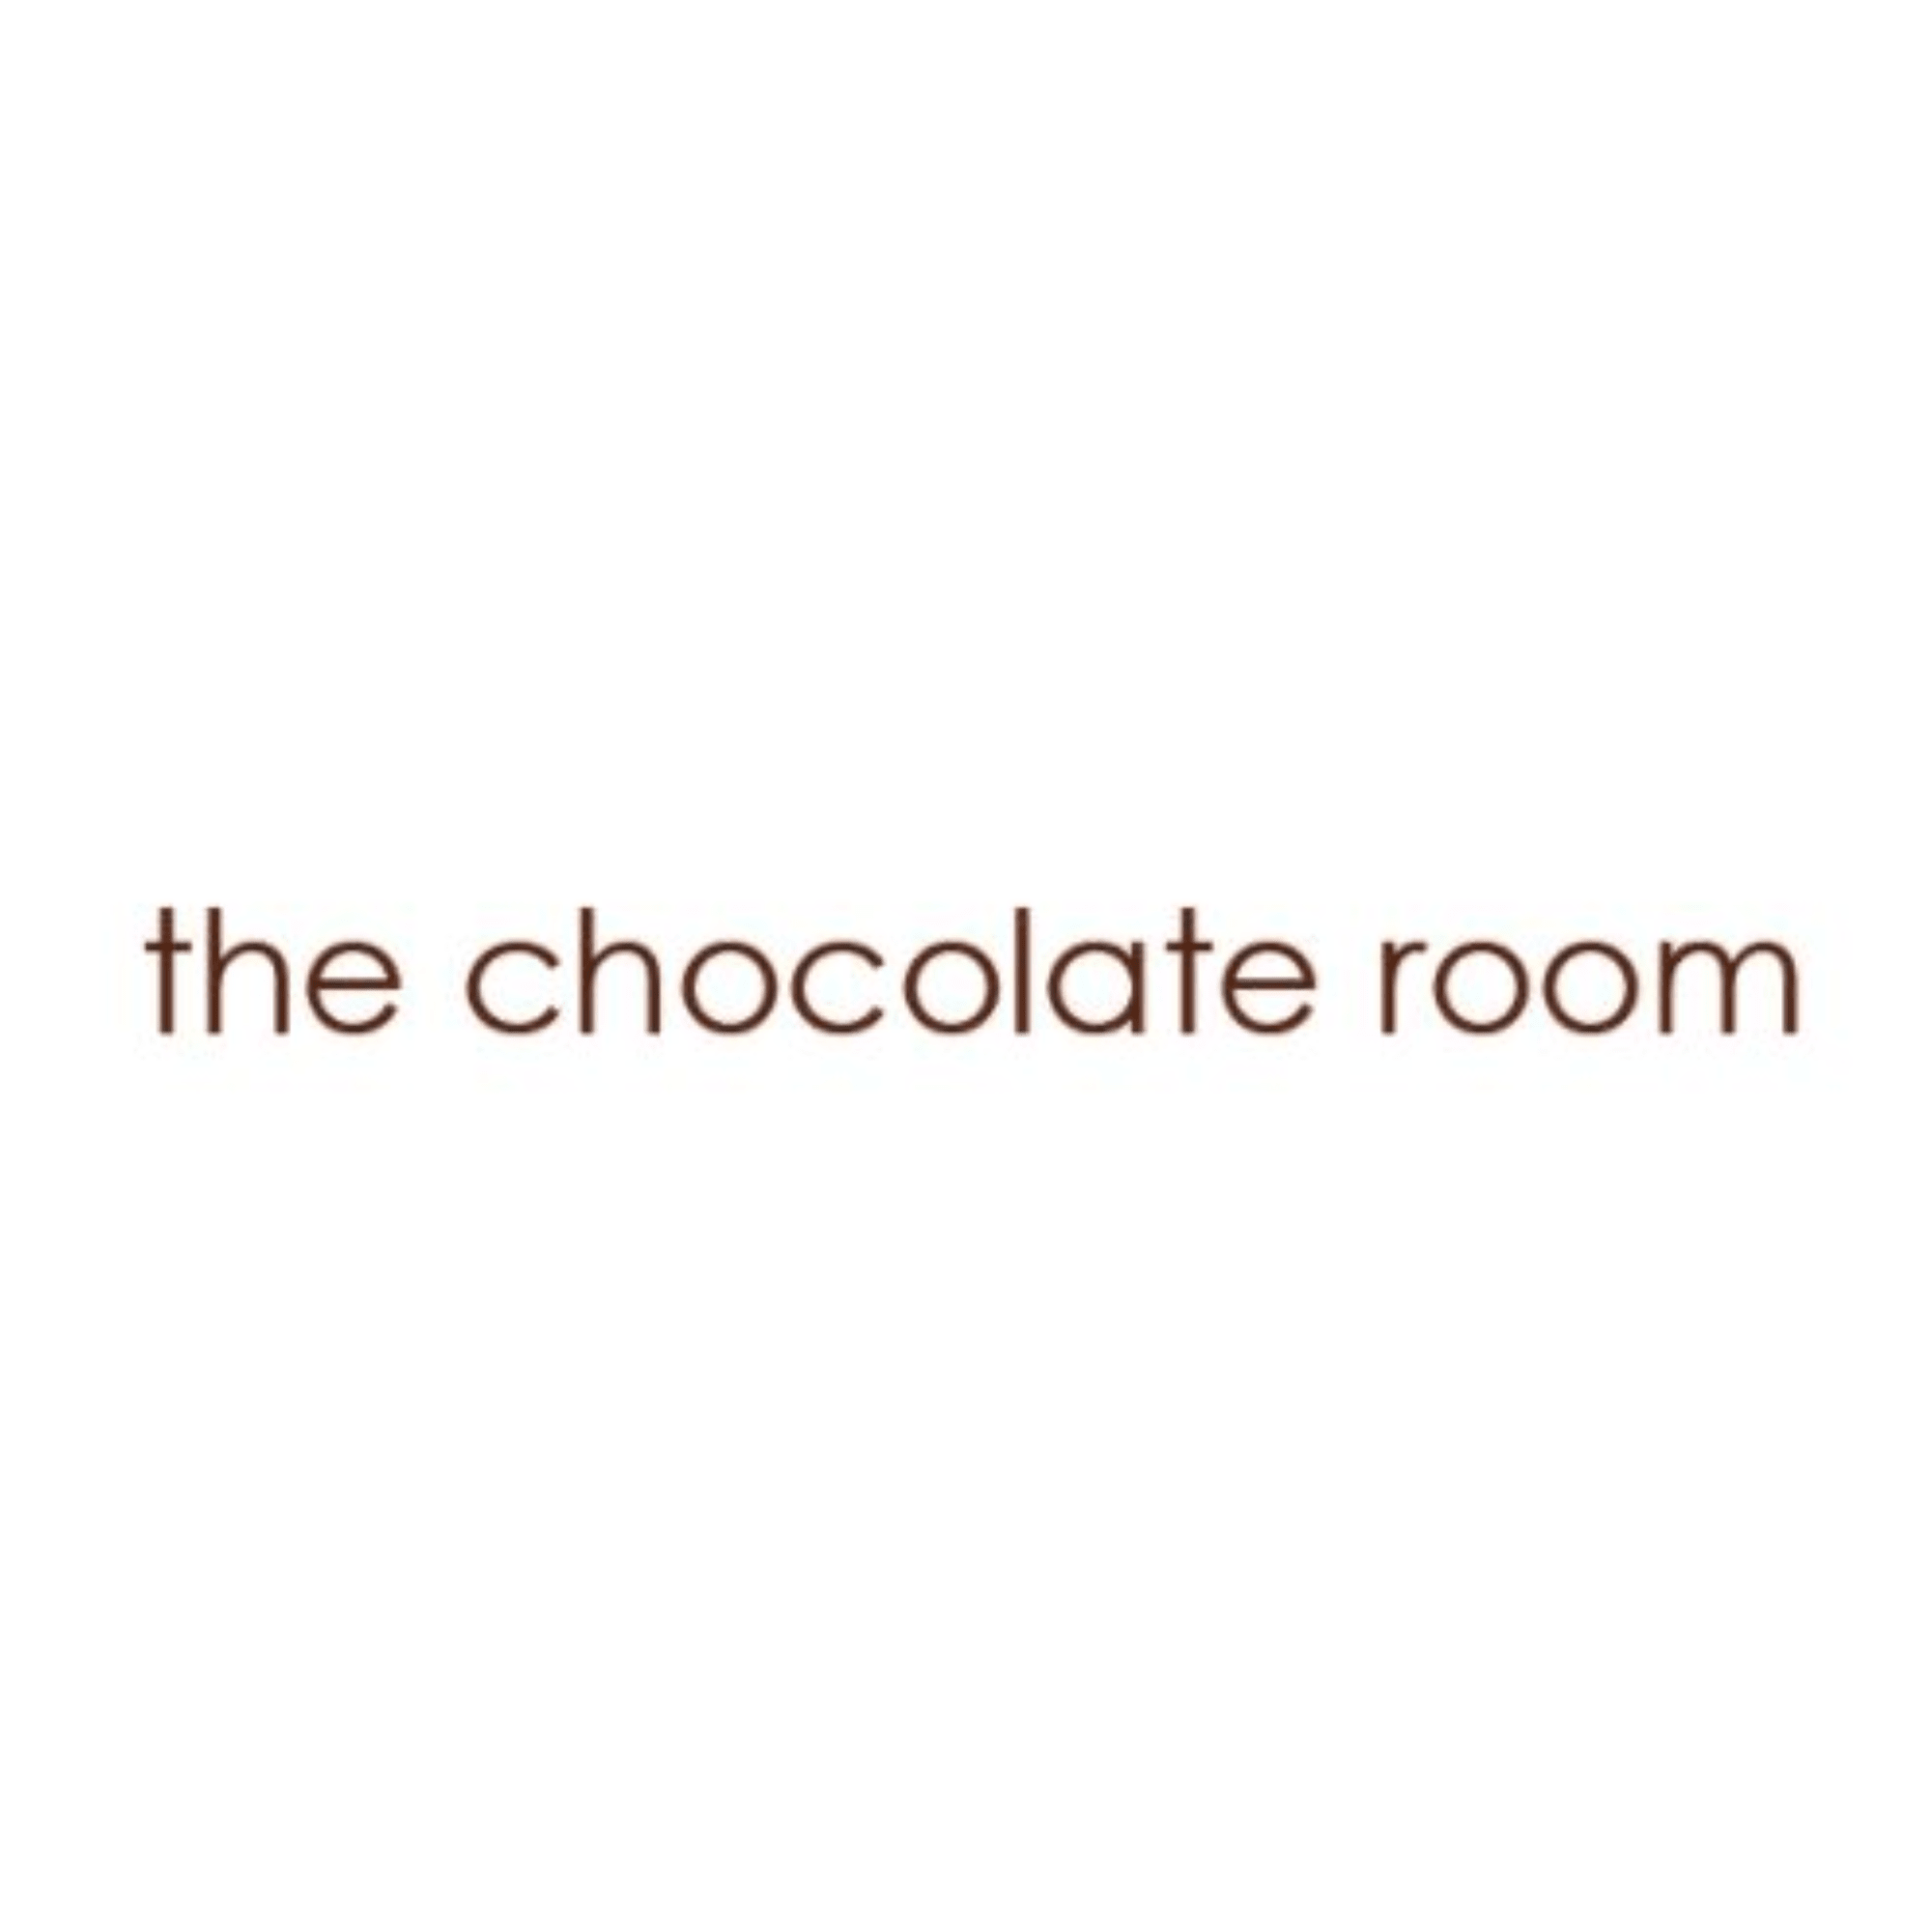 The Chocolate Room - Shop redesign